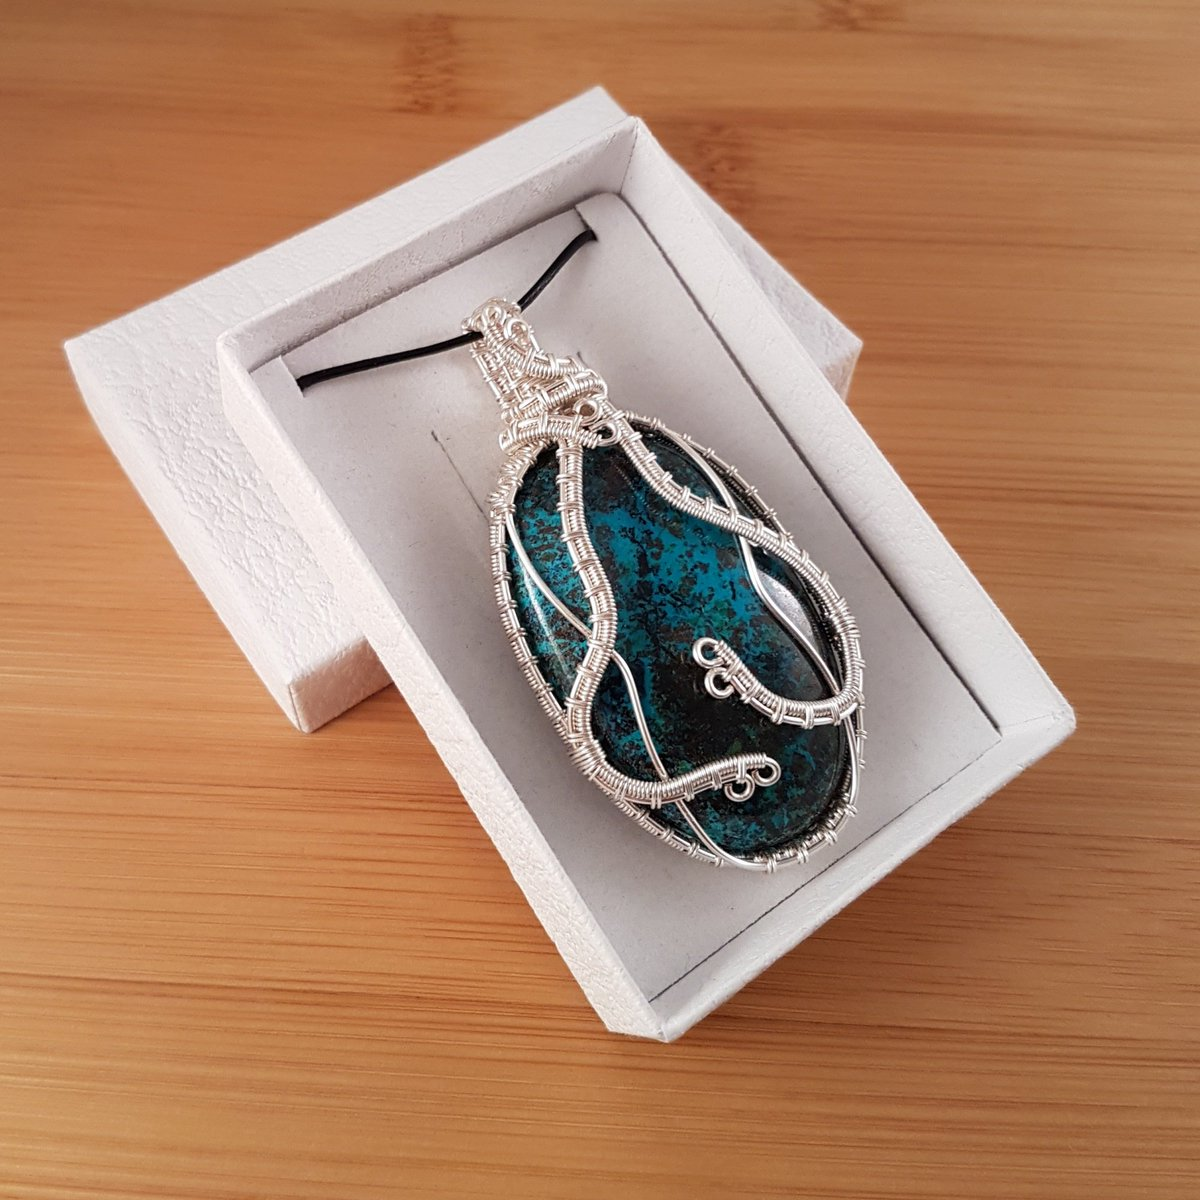 Blue oval pendant in white box